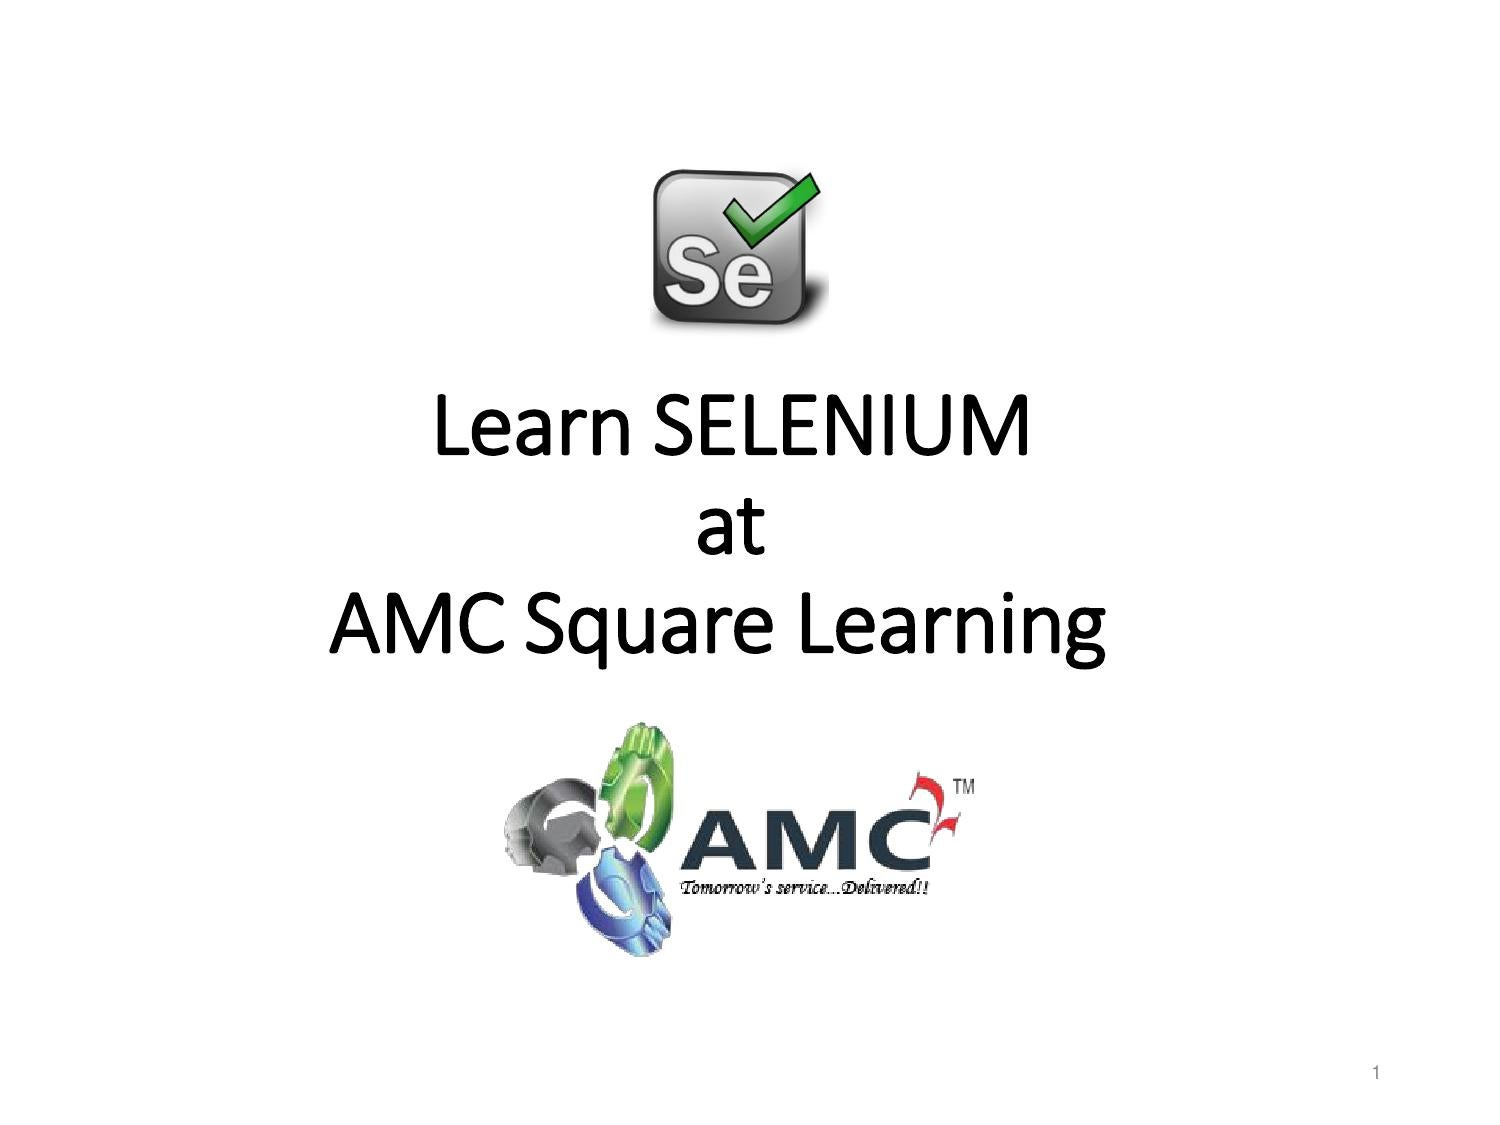 Learn selenium at amc square learning by amcsquarelearning